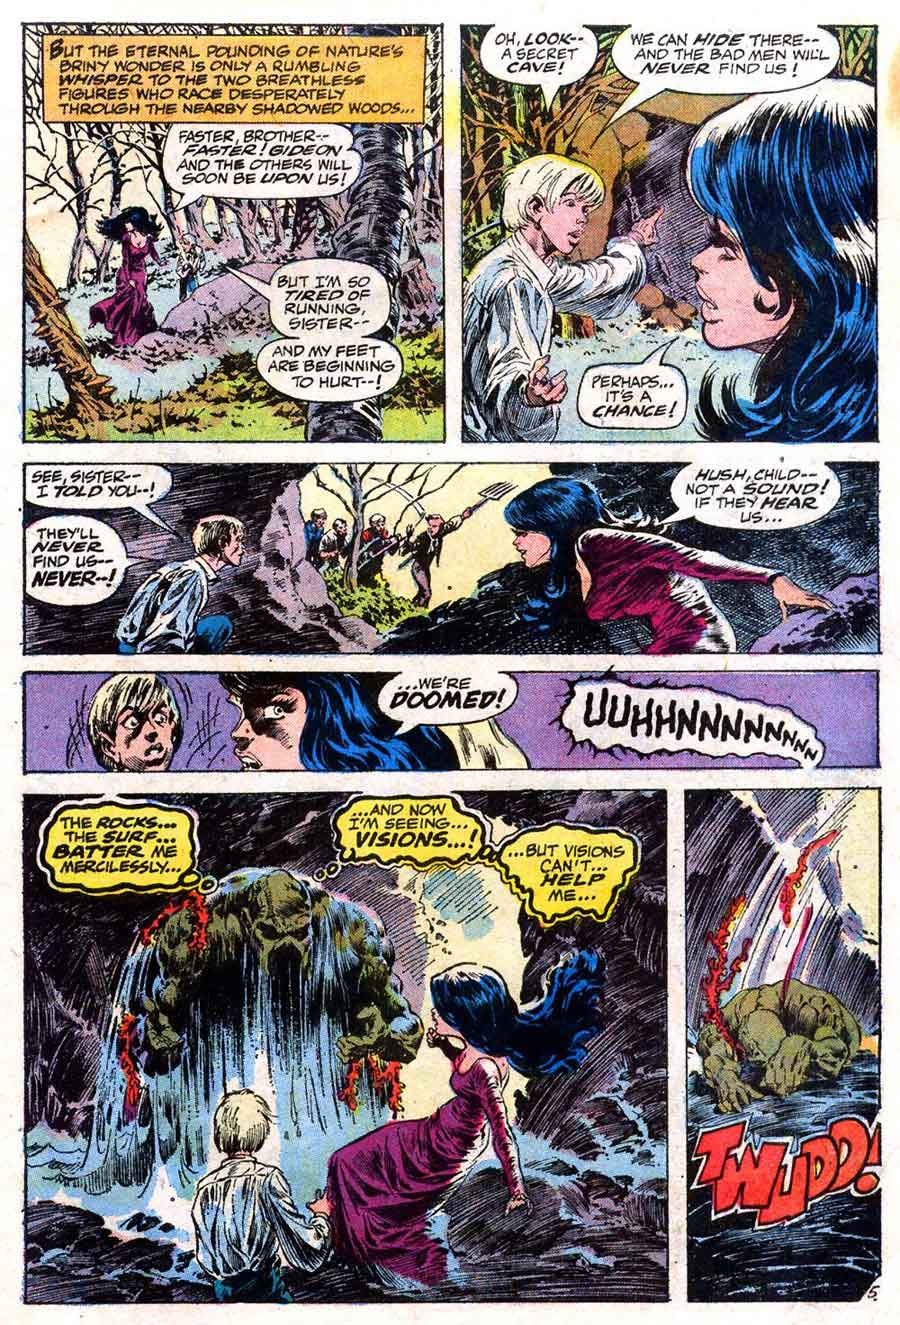 Swamp Thing v1 #5 1970s bronze age dc comic book page art by Bernie Wrightson